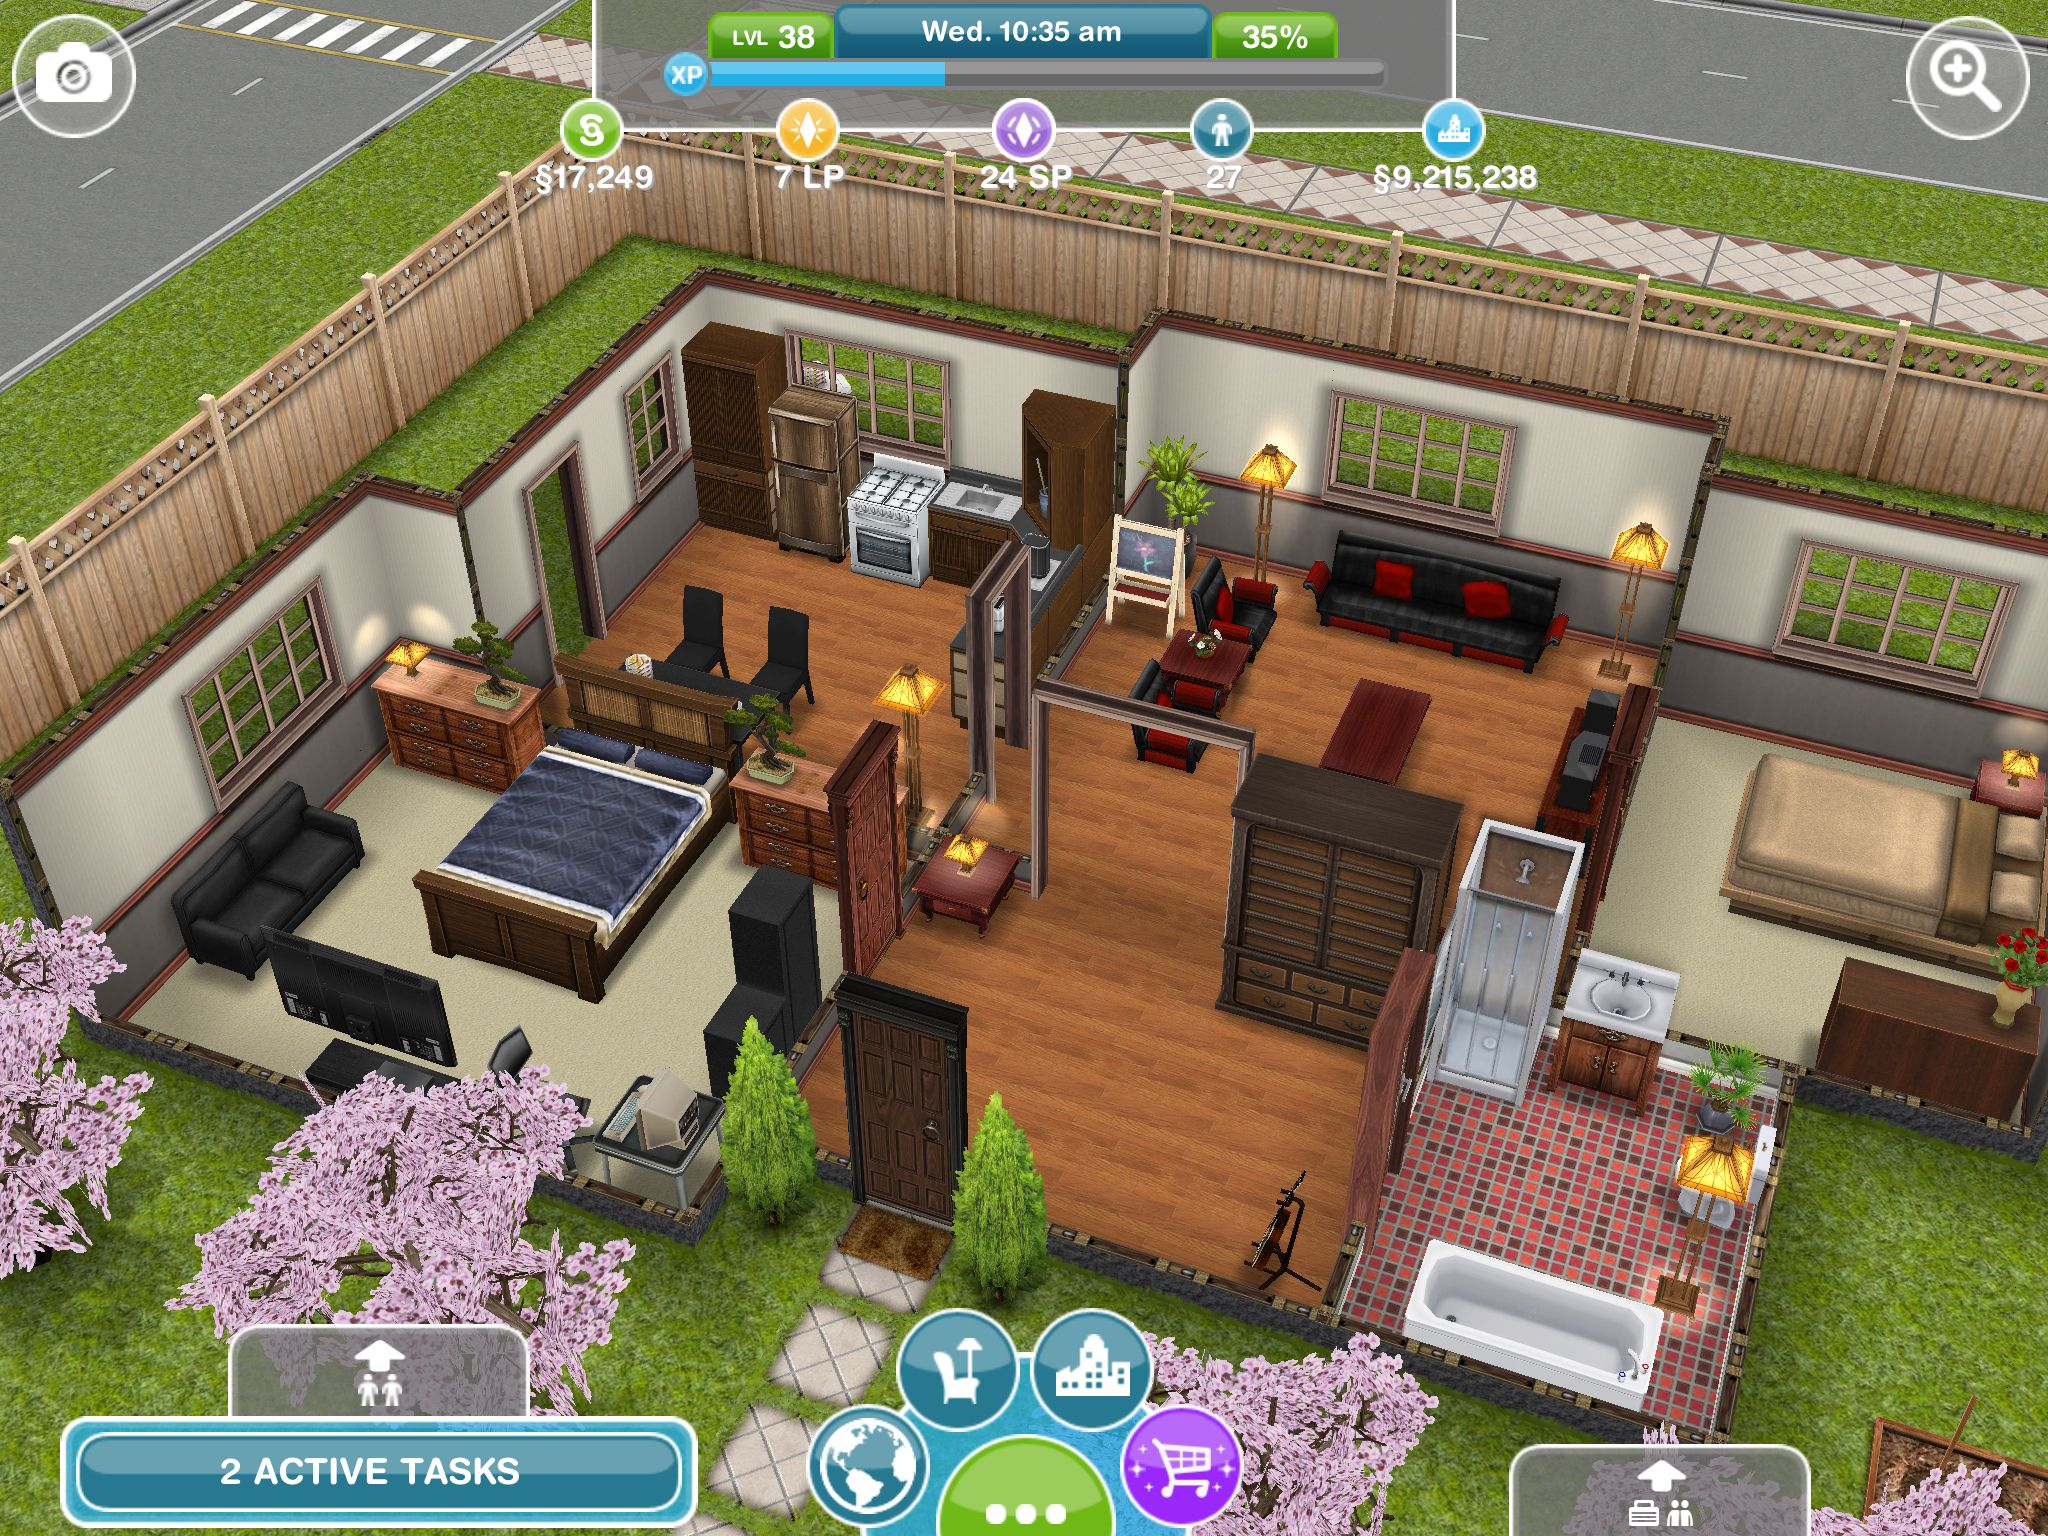 73470969a03267056d741da4a6afe349 Sim Freeplay Designs Ideas For Home on sims free play fashion designers, sims free play fashion studio, sims freeplay home design, sims freeplay dream home, sims freeplay garden ideas, sims freeplay premium home pack, sims house ideas, sims freeplay christmas ideas, sims free play home, sims freeplay pool ideas,